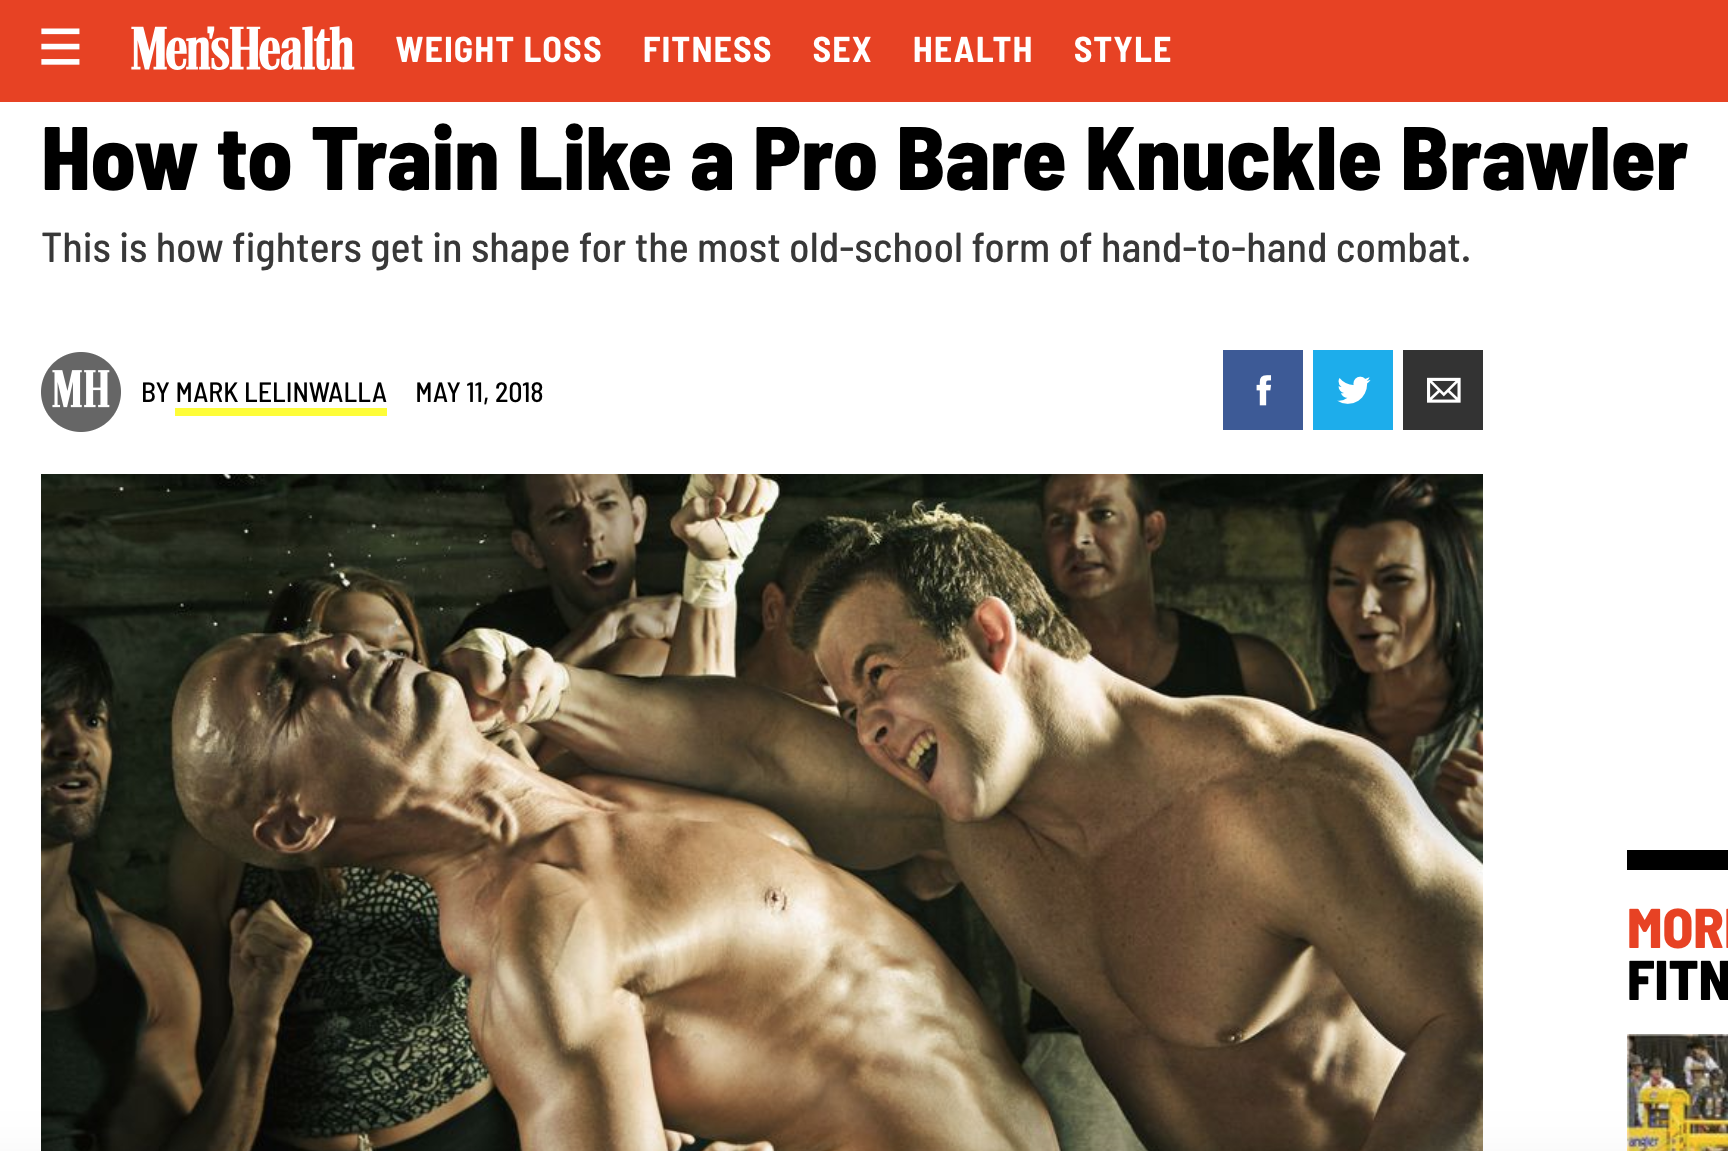 Mens Health covers the workout regiment of the pro bare knuckle fighters